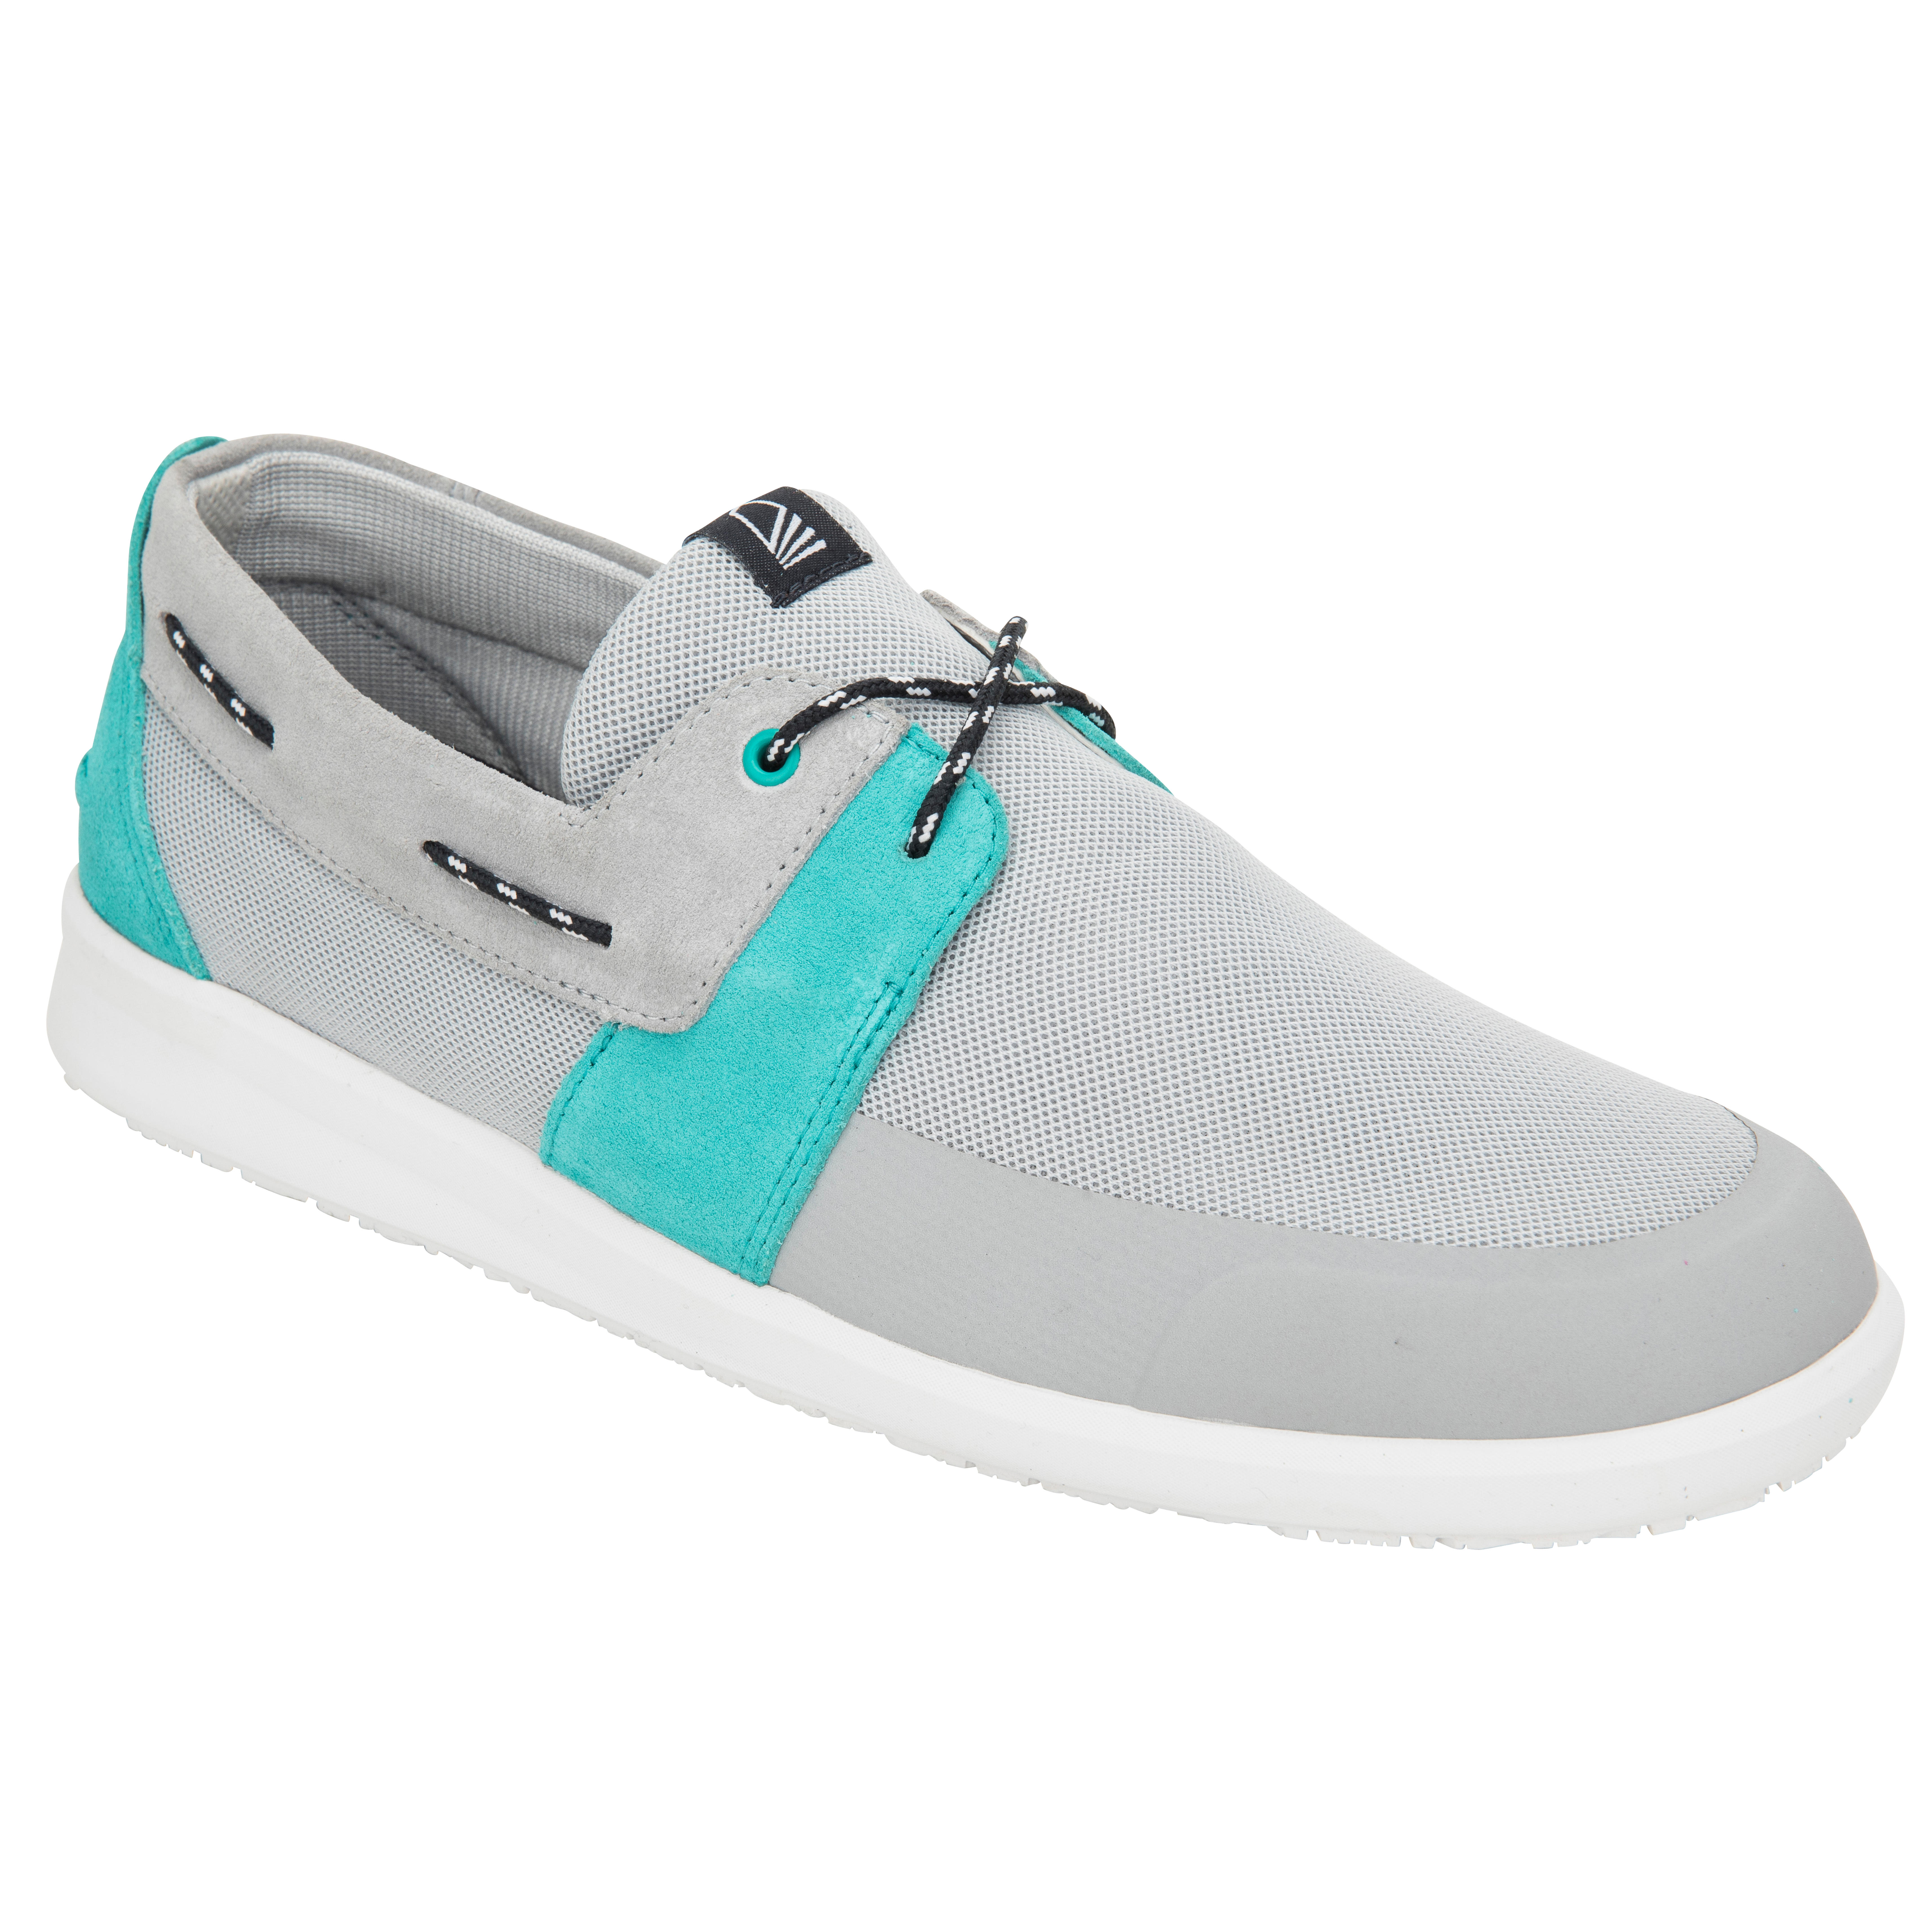 Cruise 100 men's Boat Shoes grey turquoise